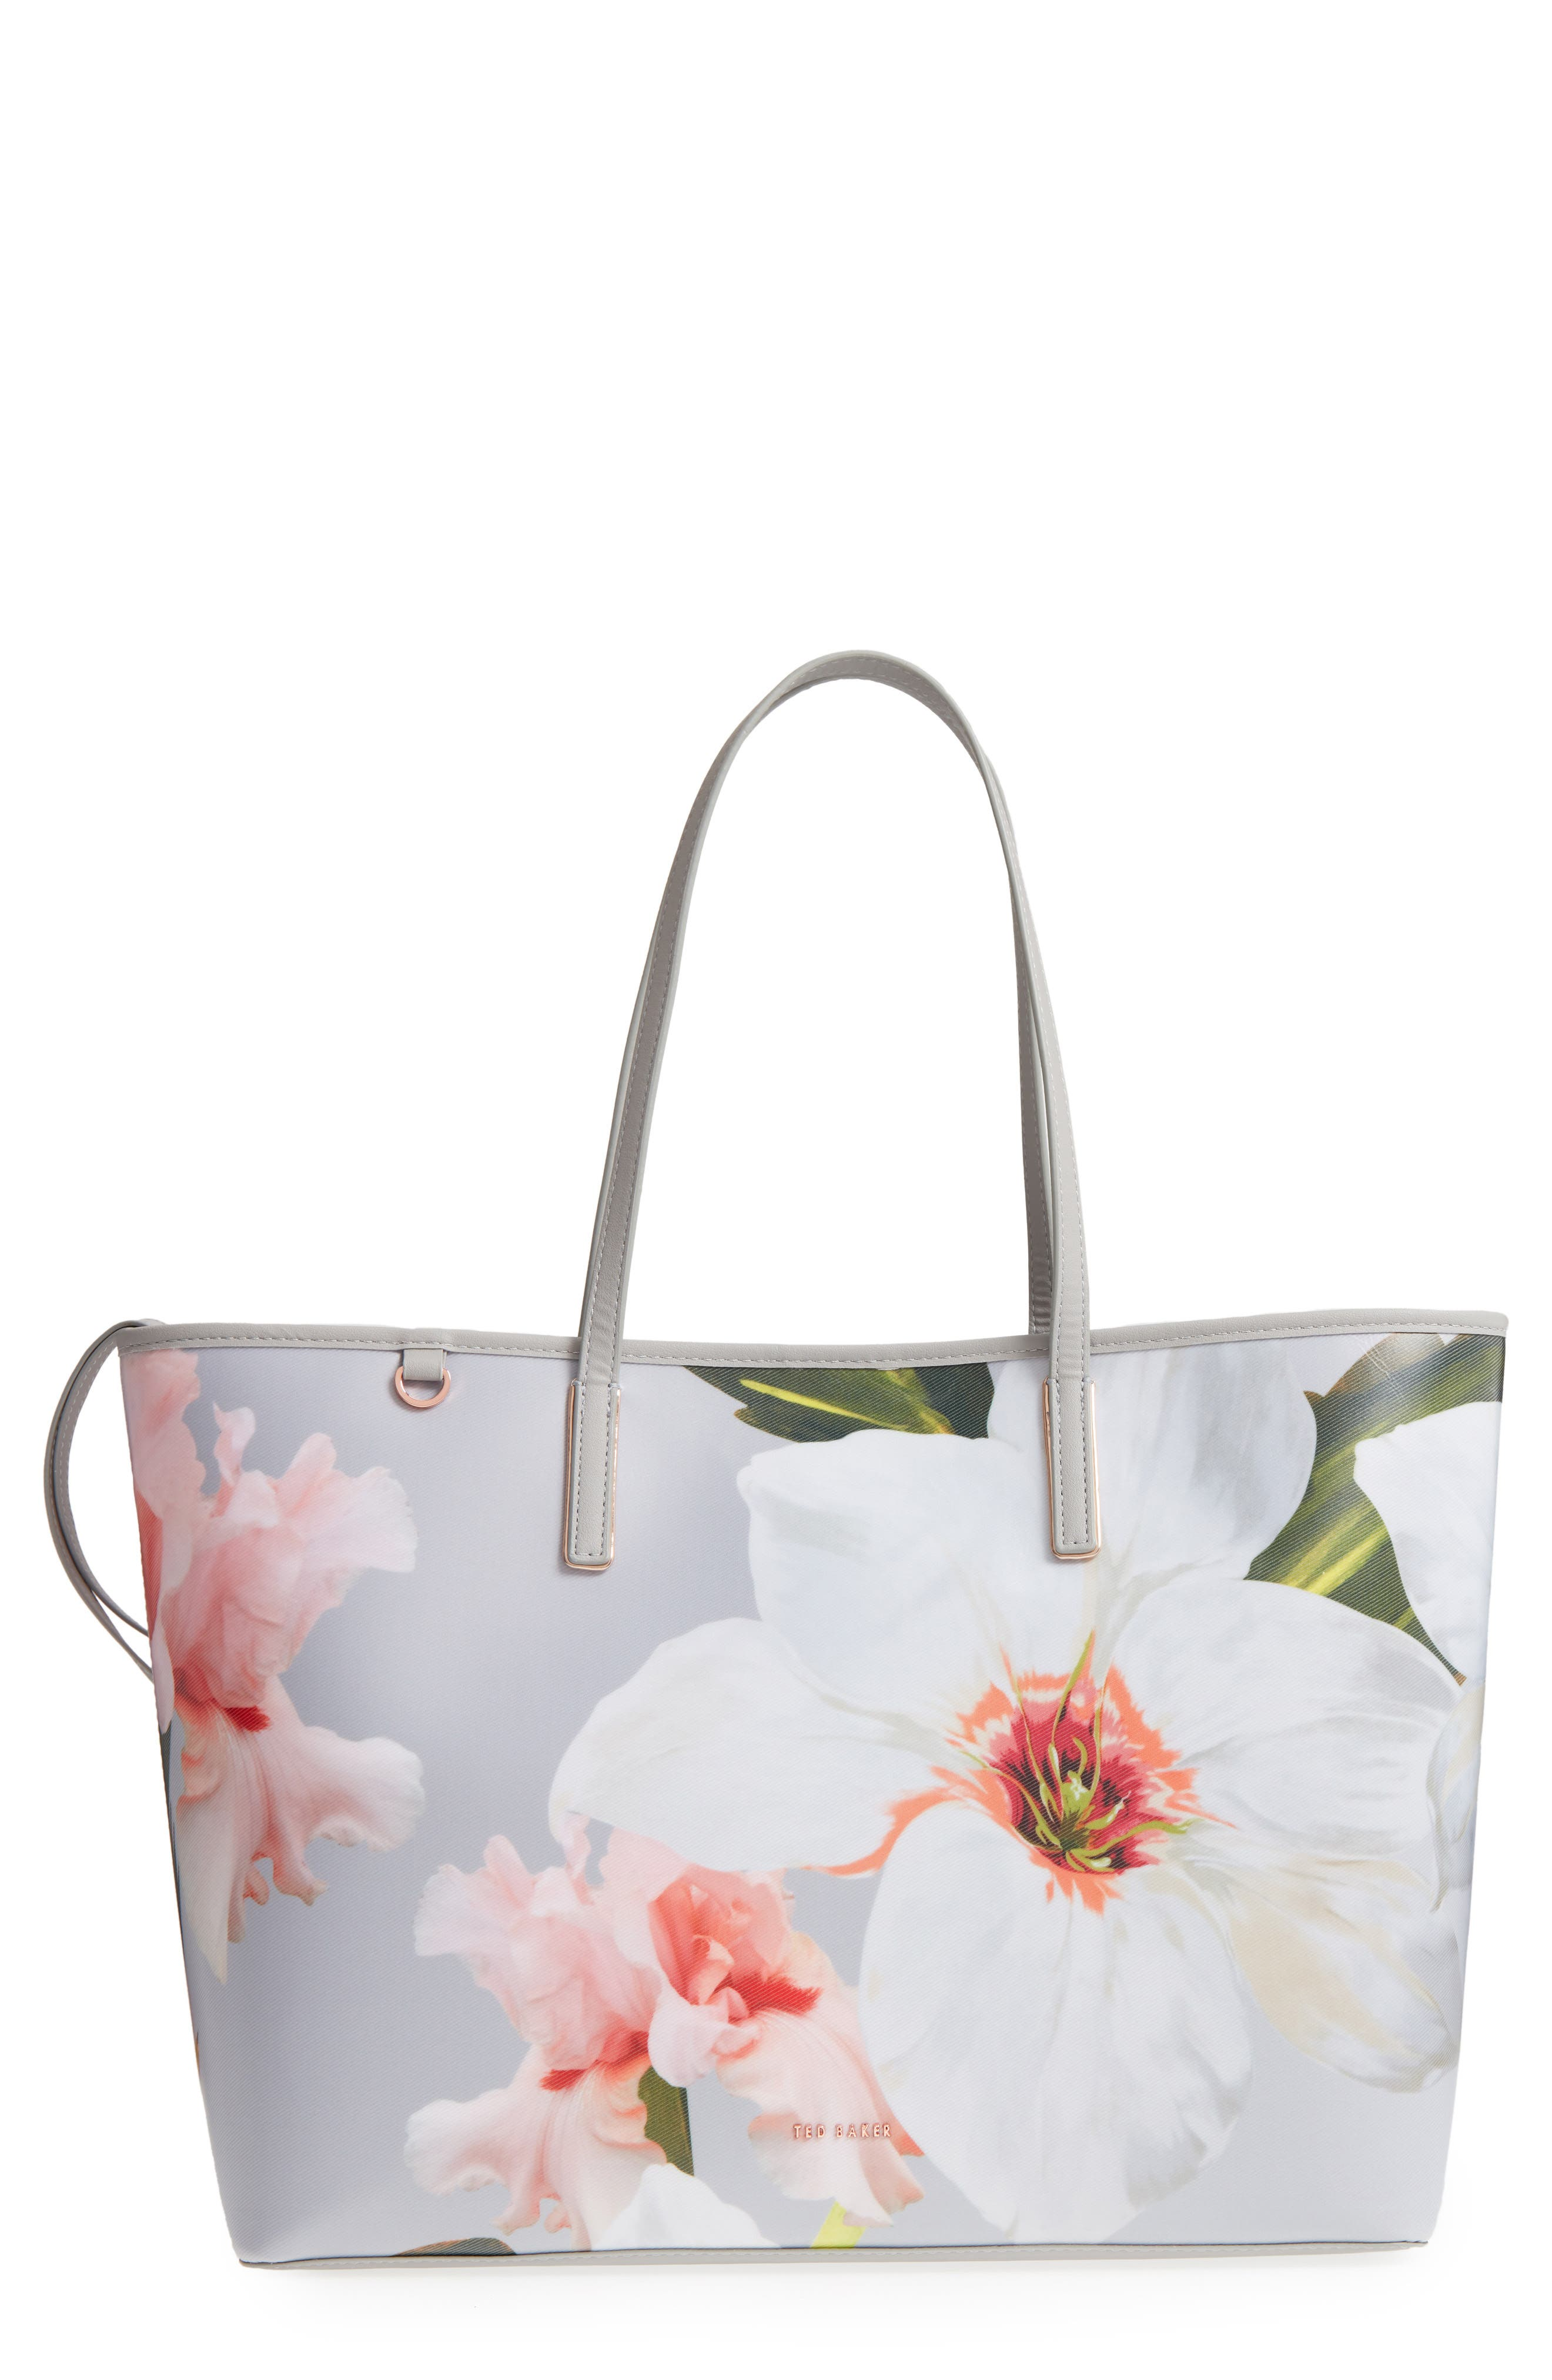 Cecie Chatsworth Bloom Canvas Tote,                             Main thumbnail 1, color,                             020